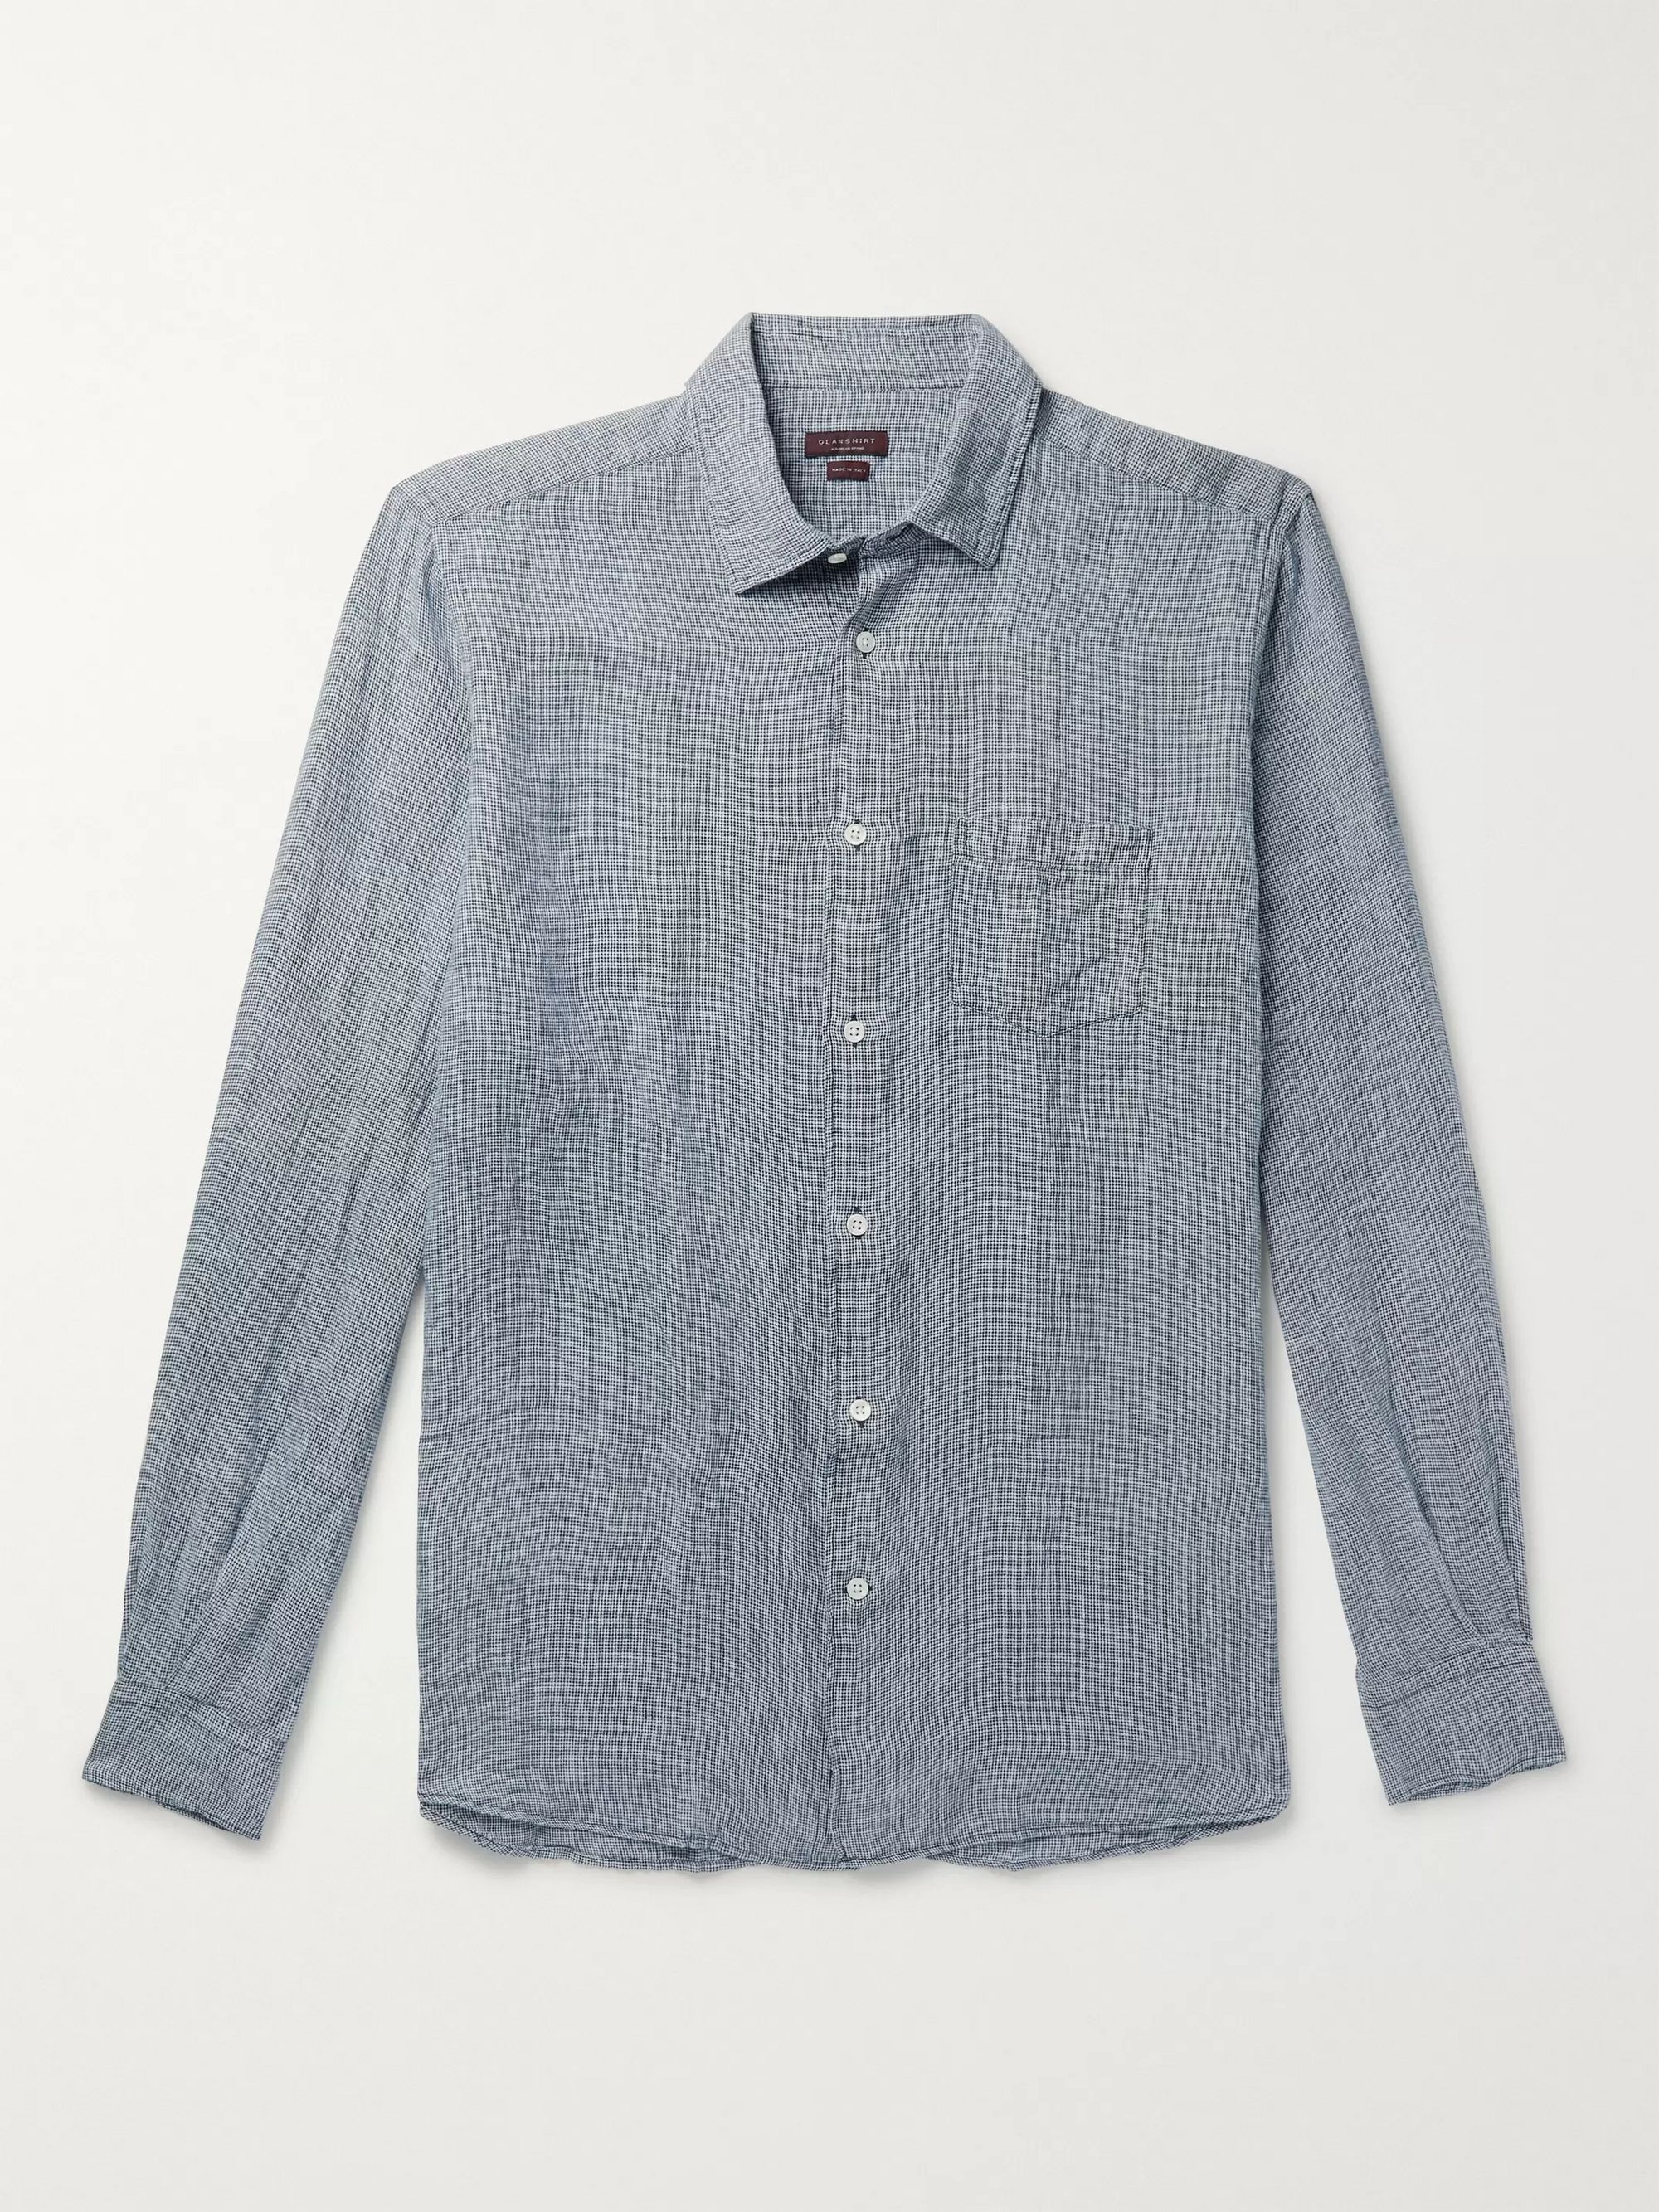 Incotex Slim-Fit Puppytooth Linen Shirt